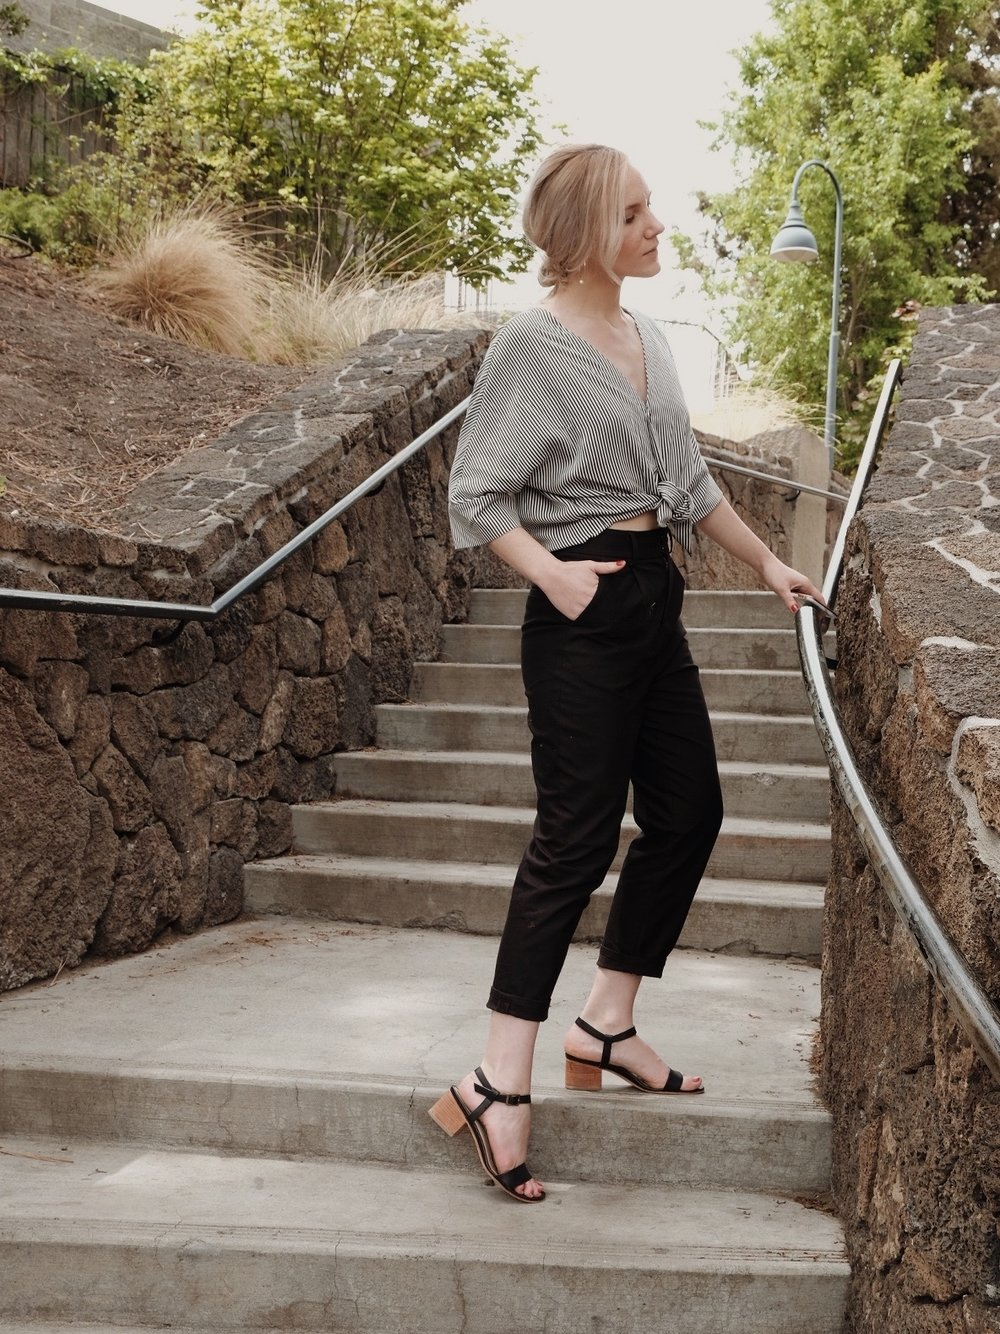 Vetta Capsule Review | Ethical Fashion Blogger Selflessly Styled